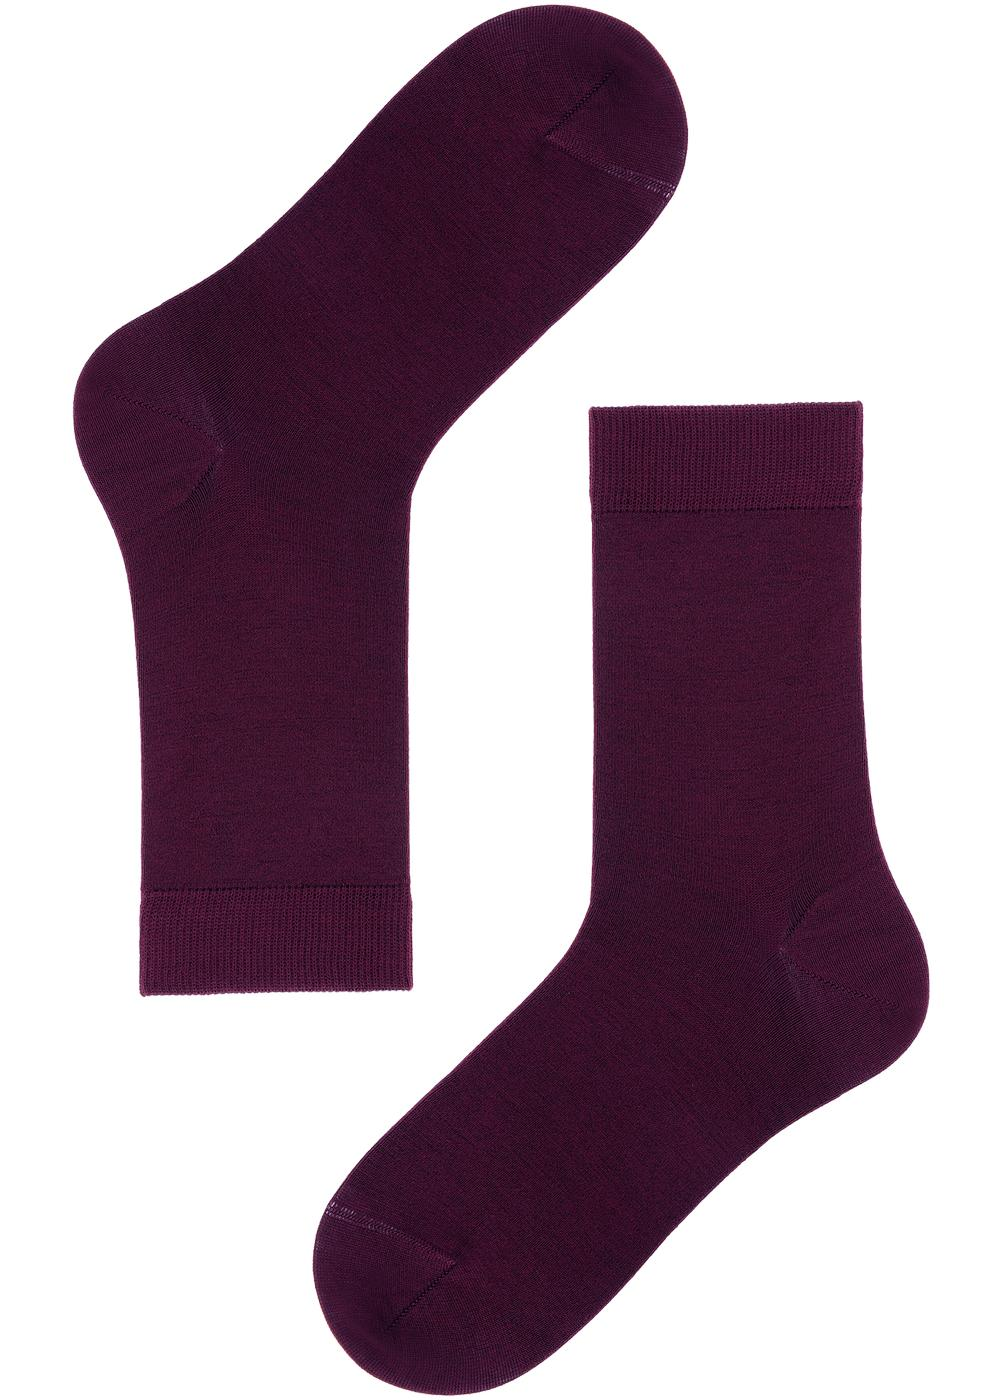 Short Wool and Cotton Socks